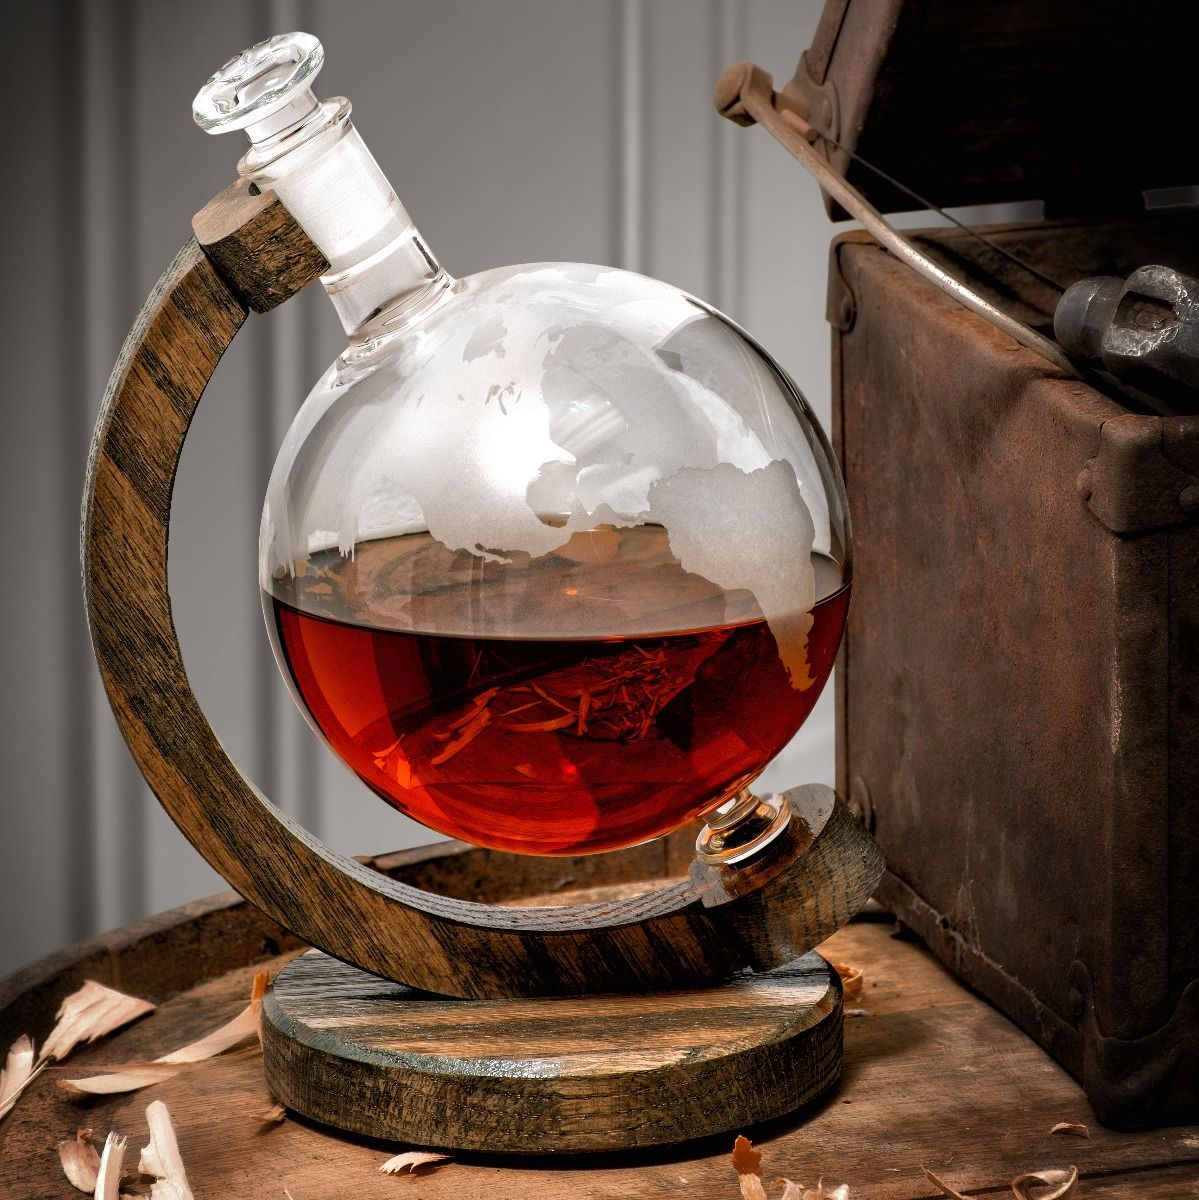 1000ml Etched Glass Globe whiskey decanter bottle